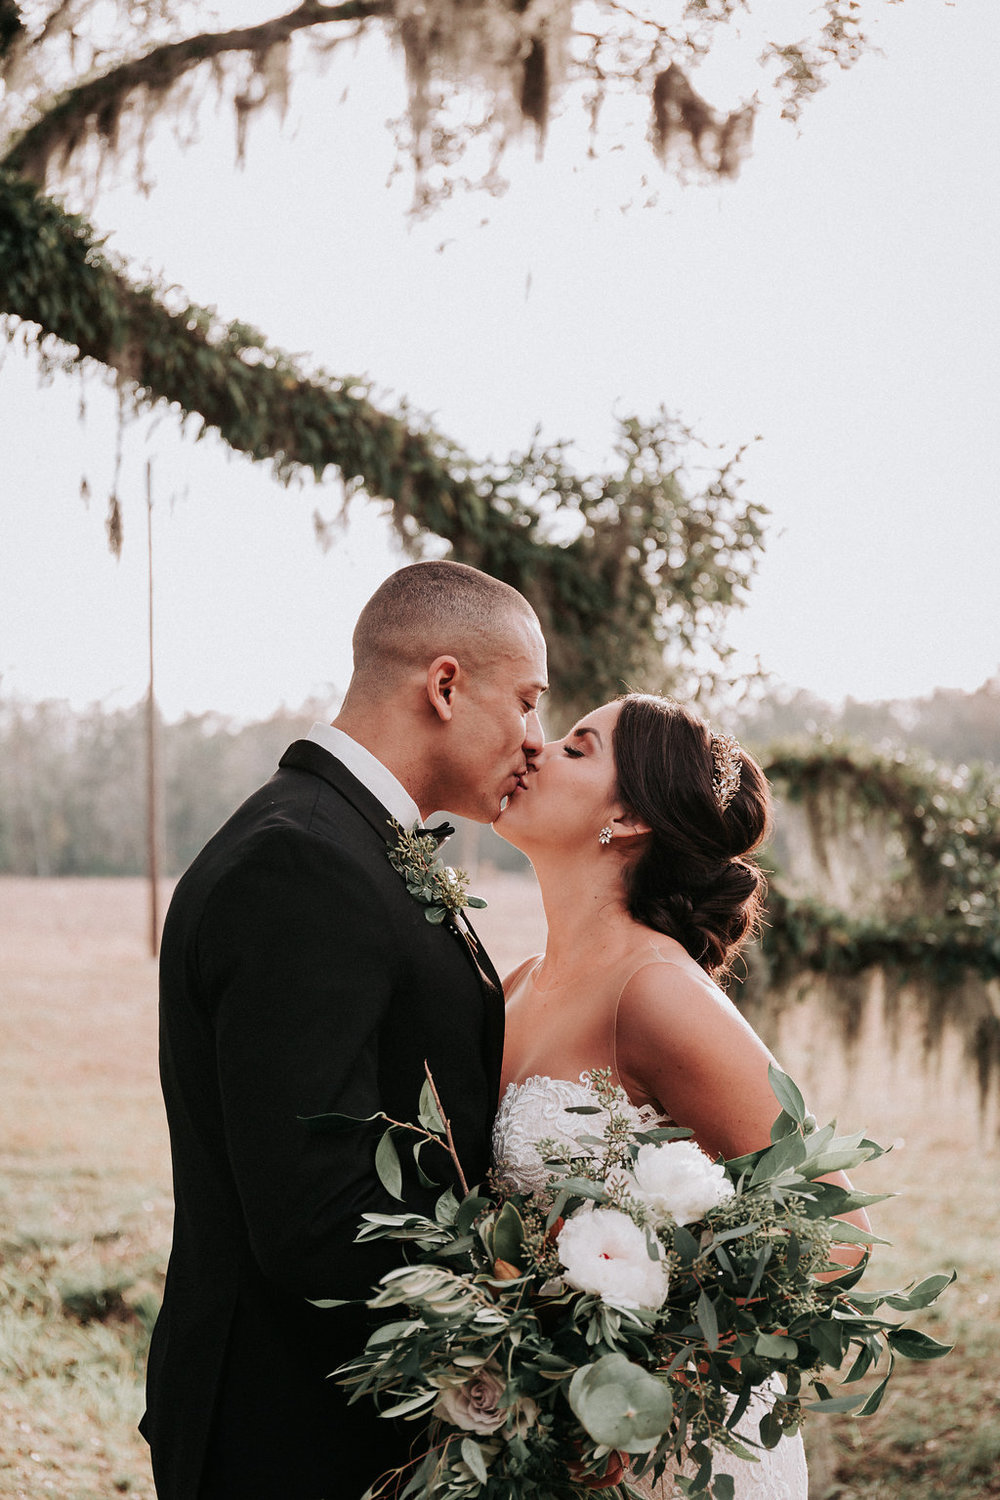 ivory-and-beau-savannah-bridal-shop-ivory-and-beau-couple-caitlin-and-tim-wormsloe-wedding-savannah-wedding-florist-house-of-ivory-photography-29.jpg